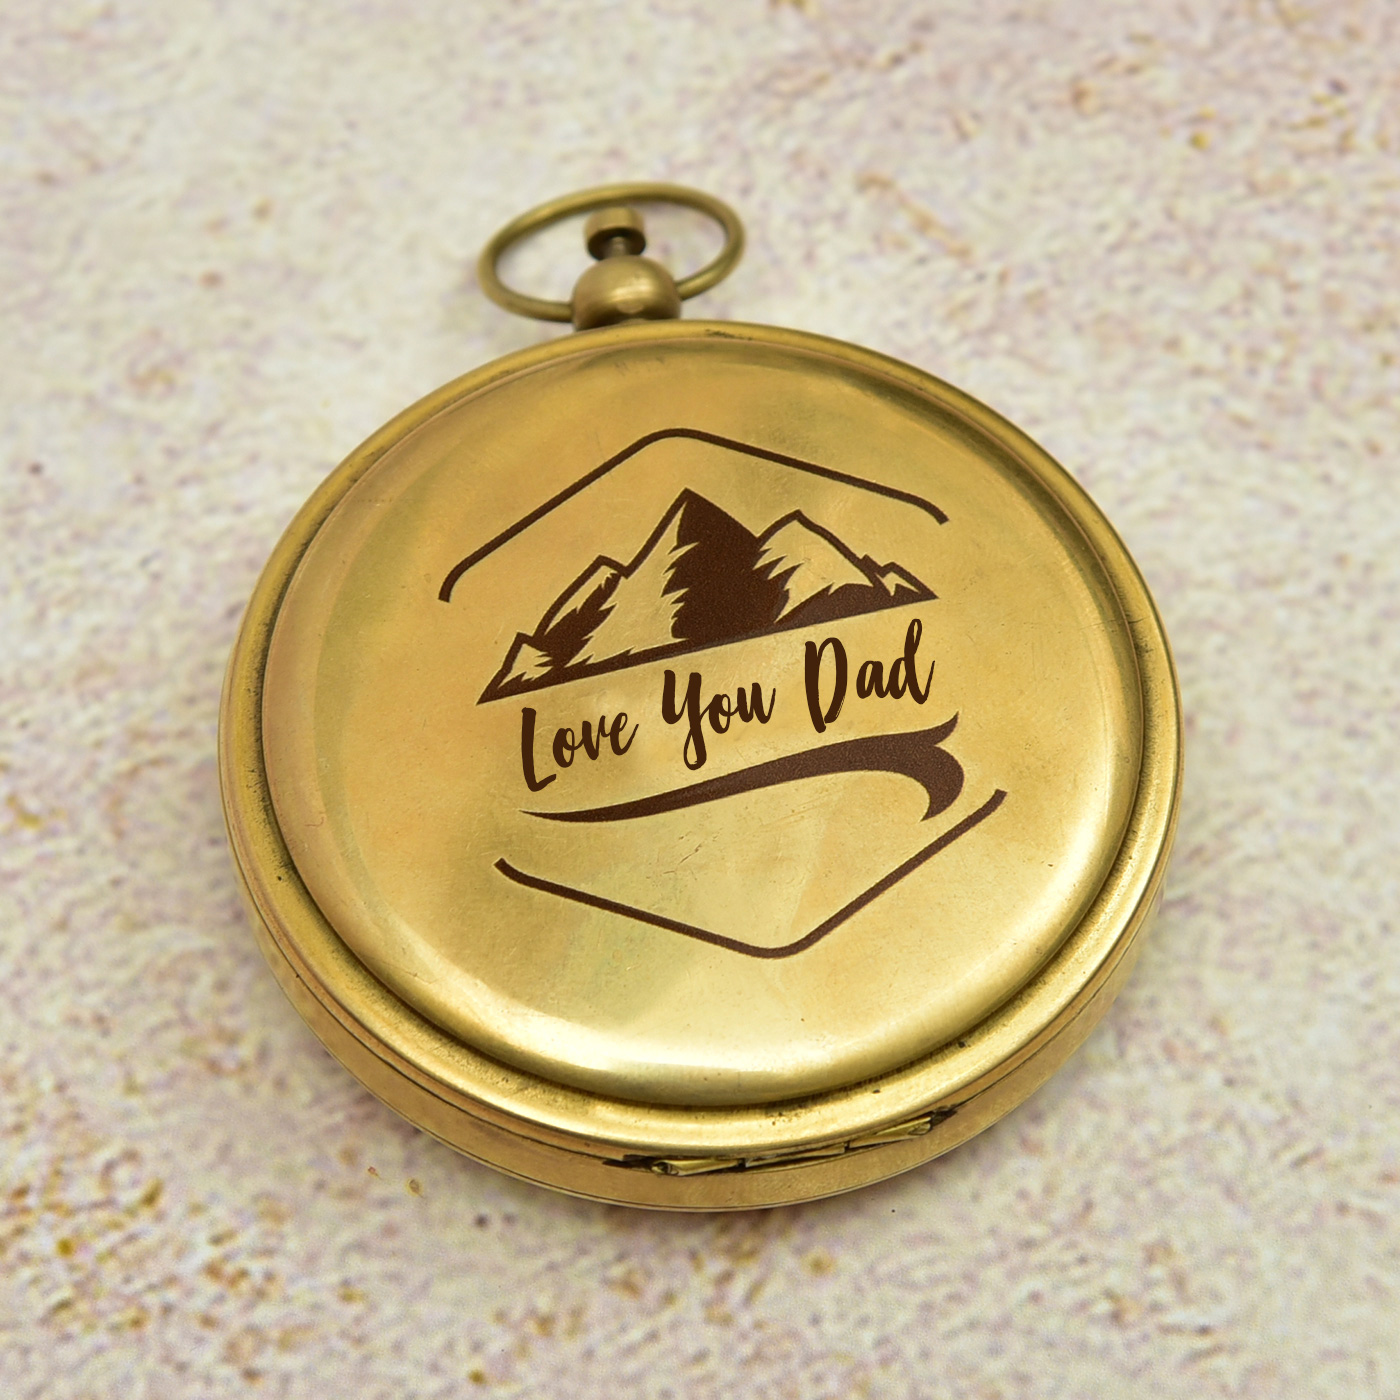 Customized-Love-You-Dad-Brass-Push-Button-Compass